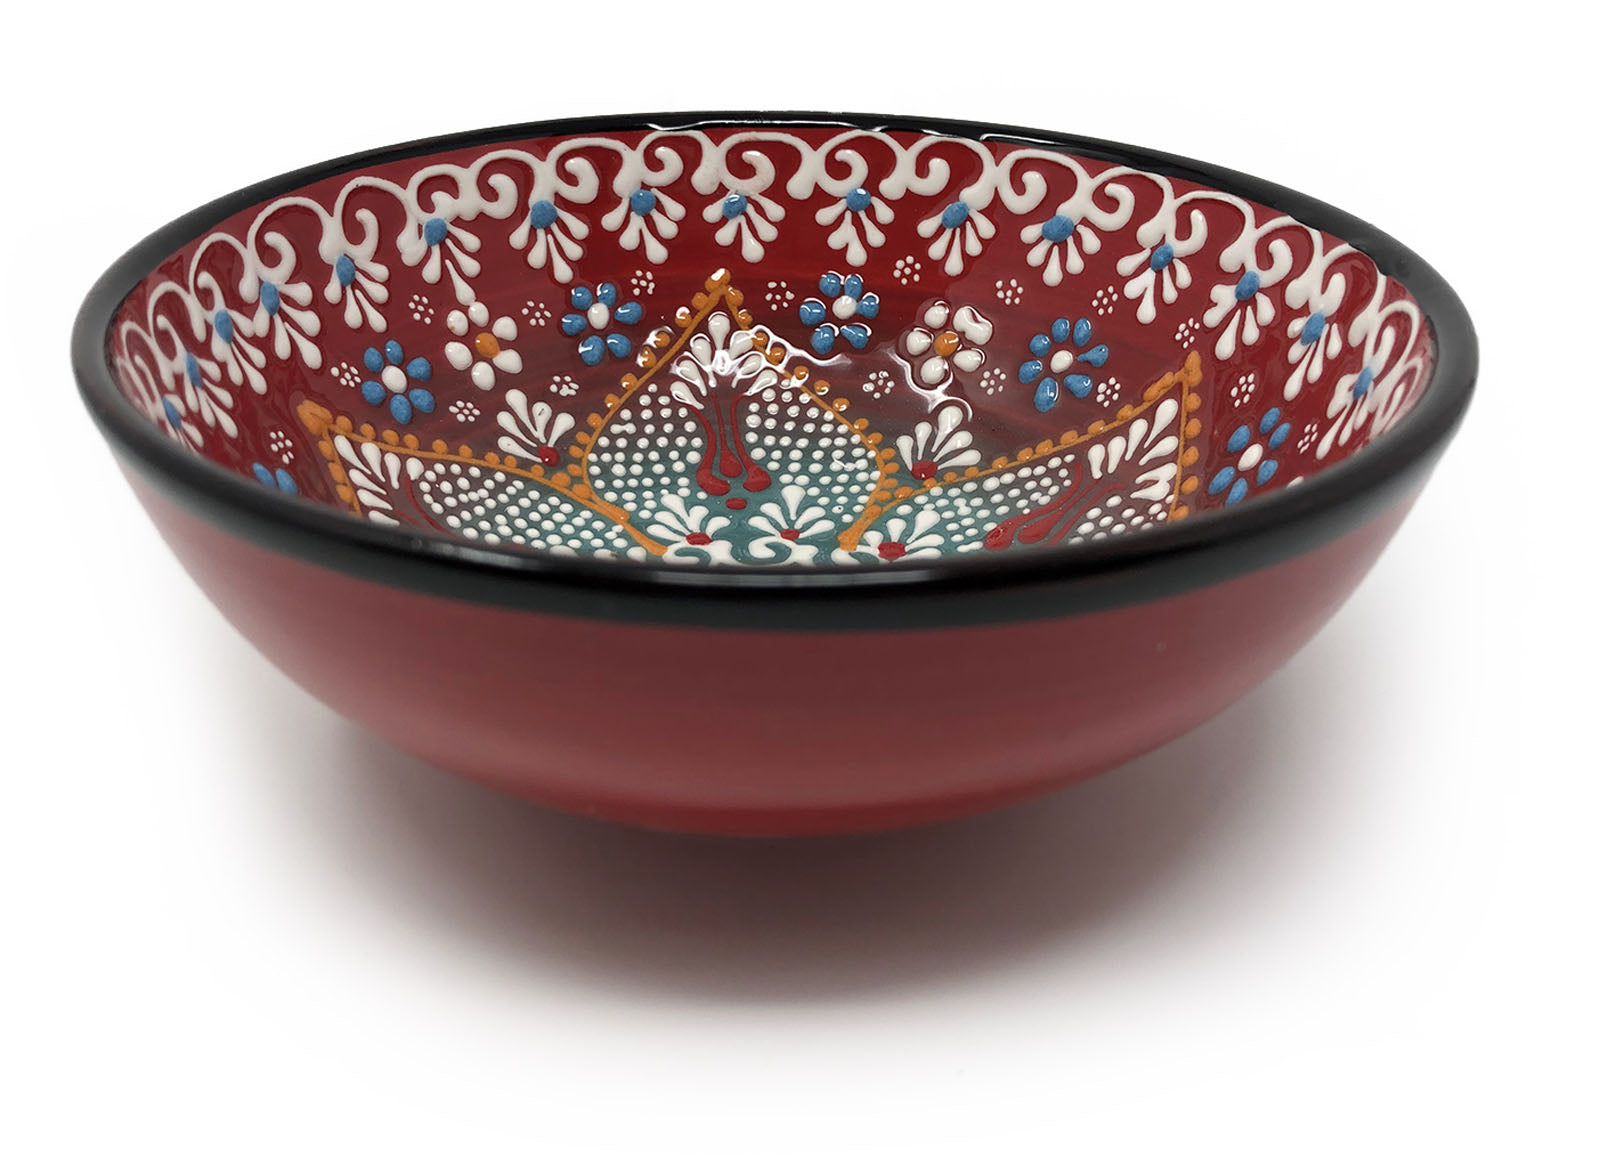 Dantel Turkish Handmade Ceramic 12cm Bowl Red